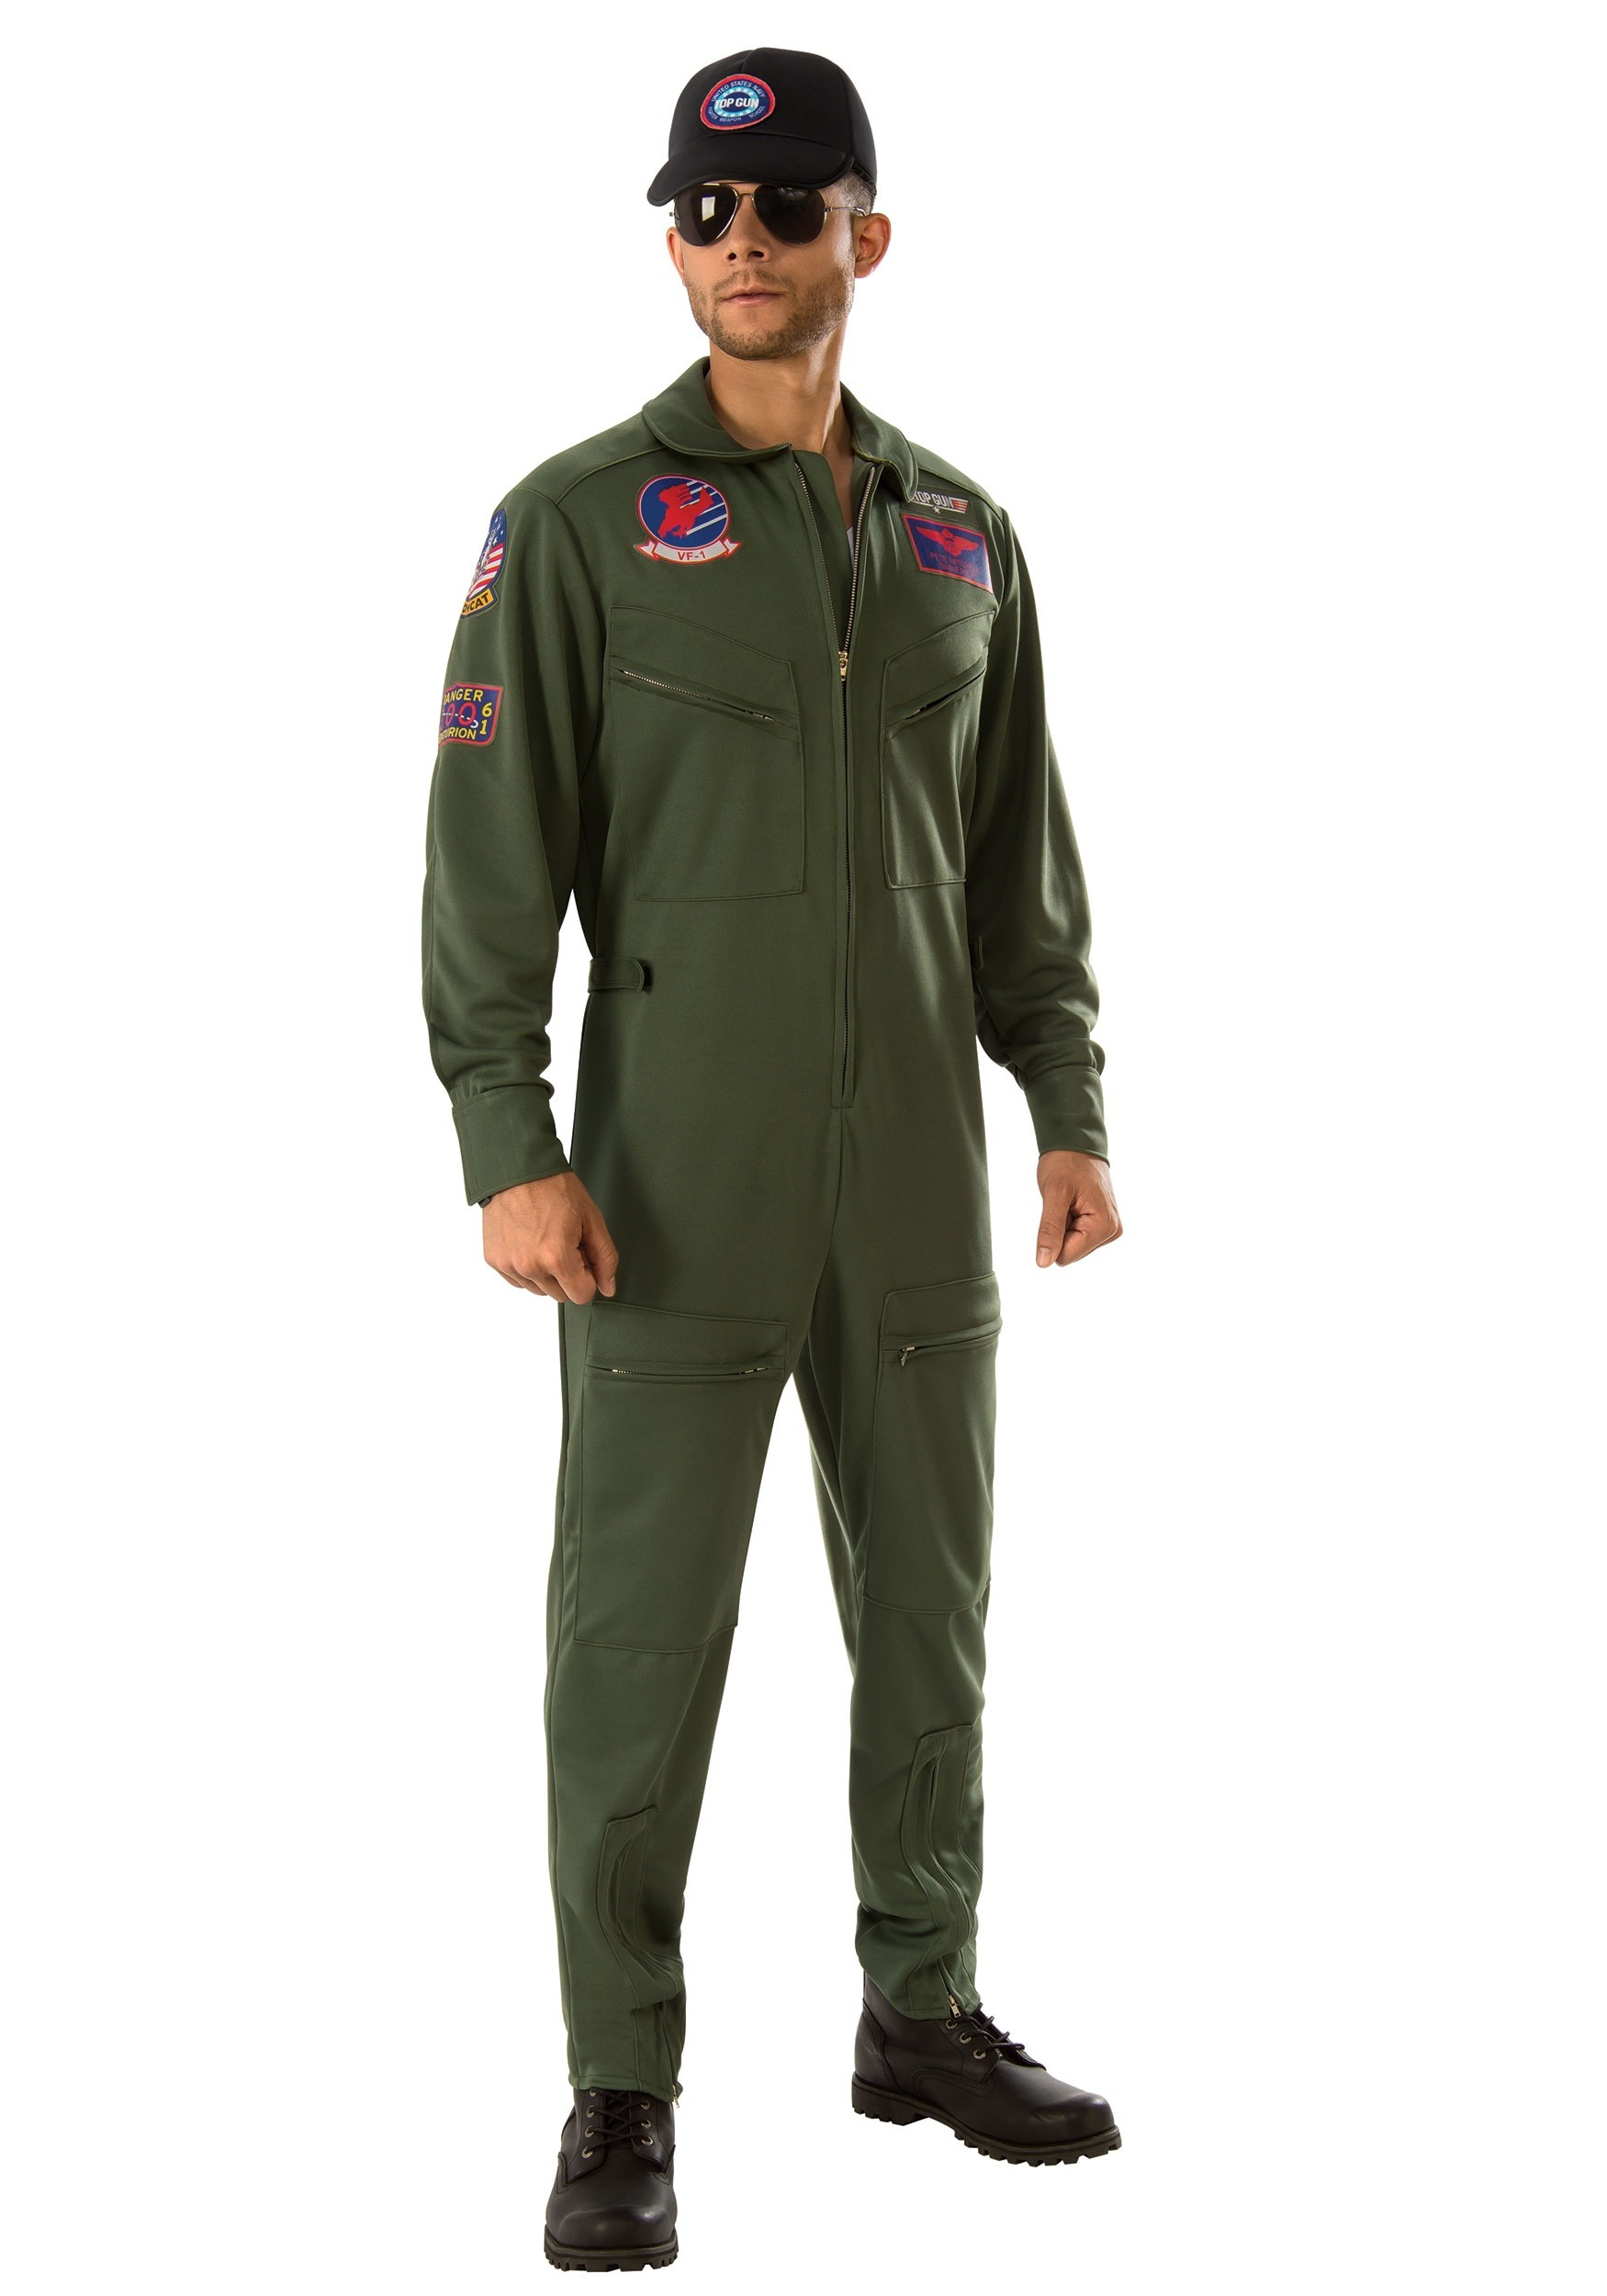 46ce1e3a0038 Top Gun Jumpsuit Costume for Men